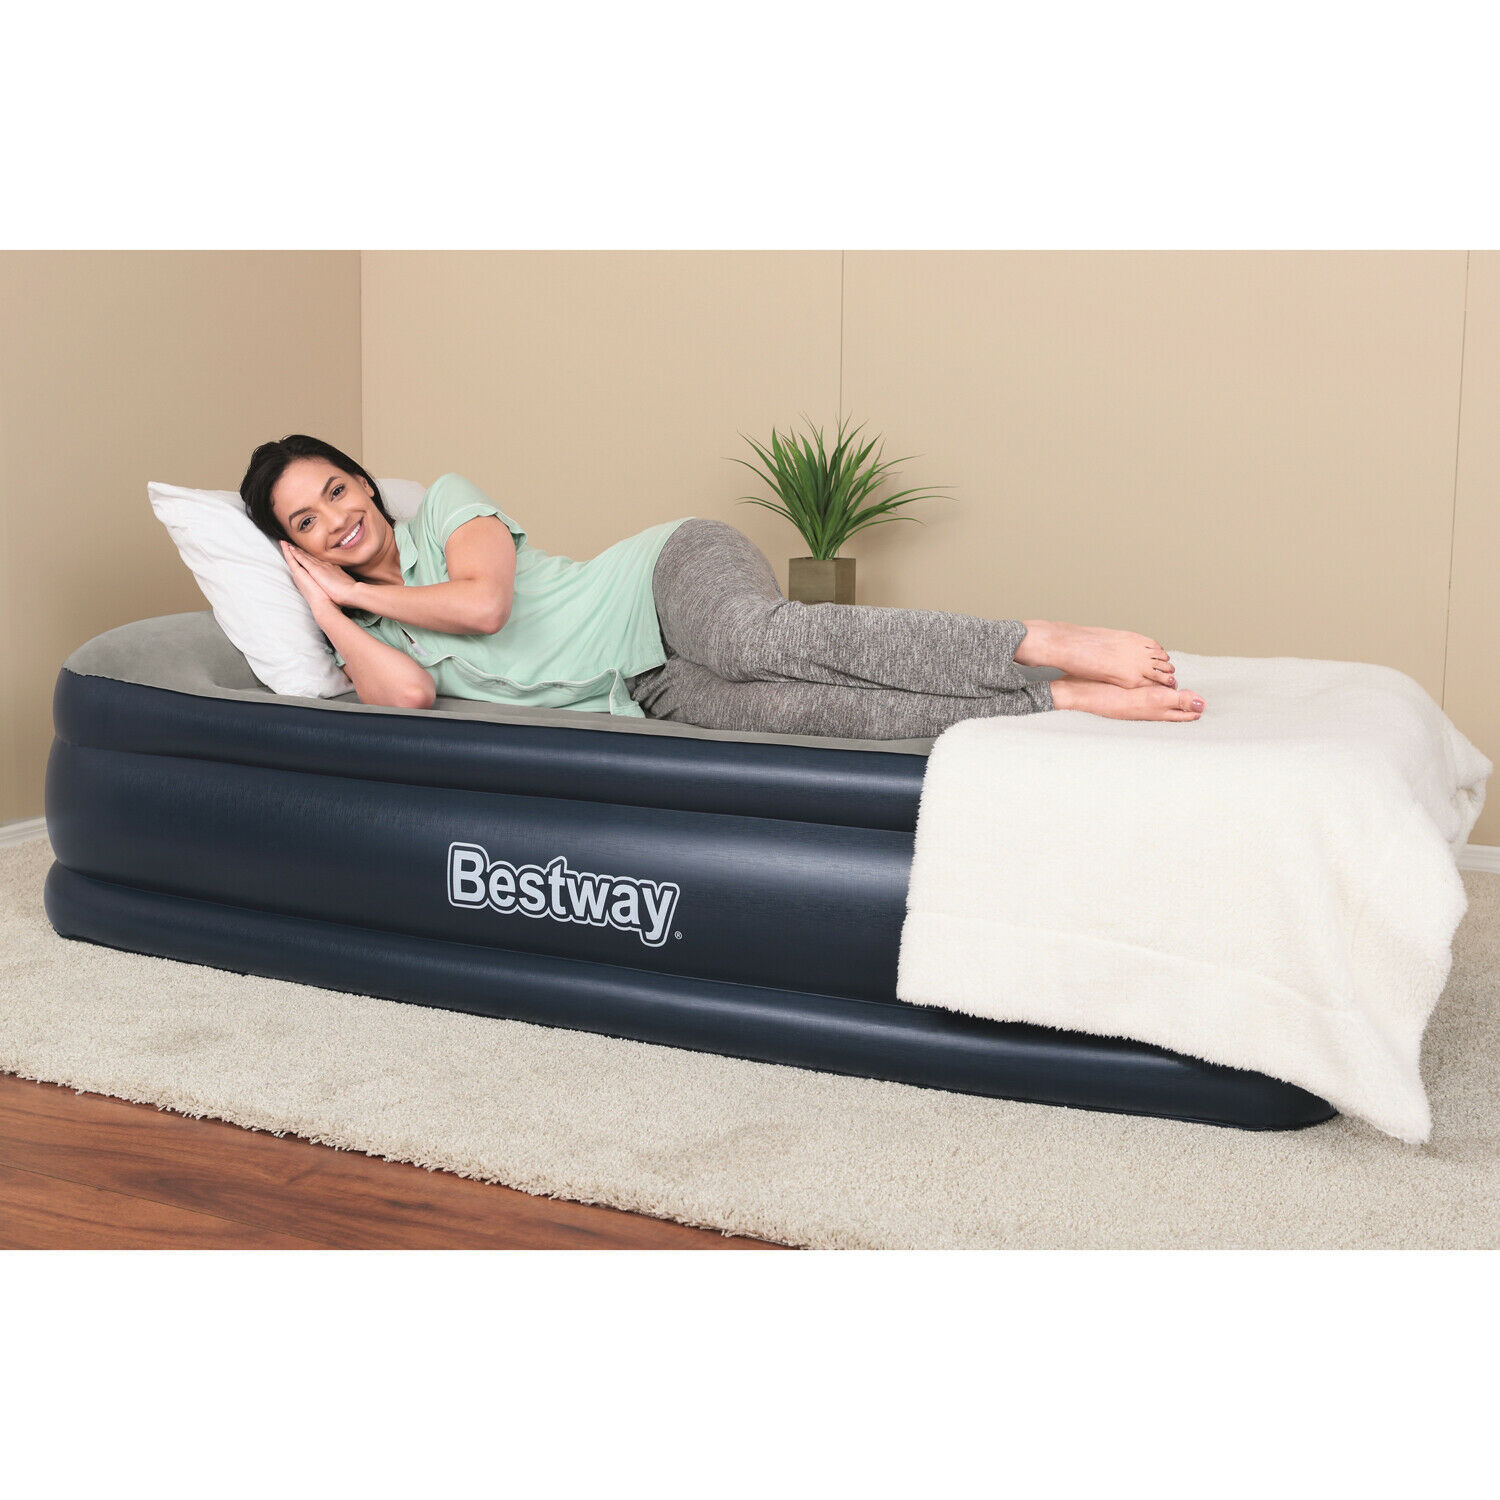 Bestway Airbed With Built-In AC Pump - Twin